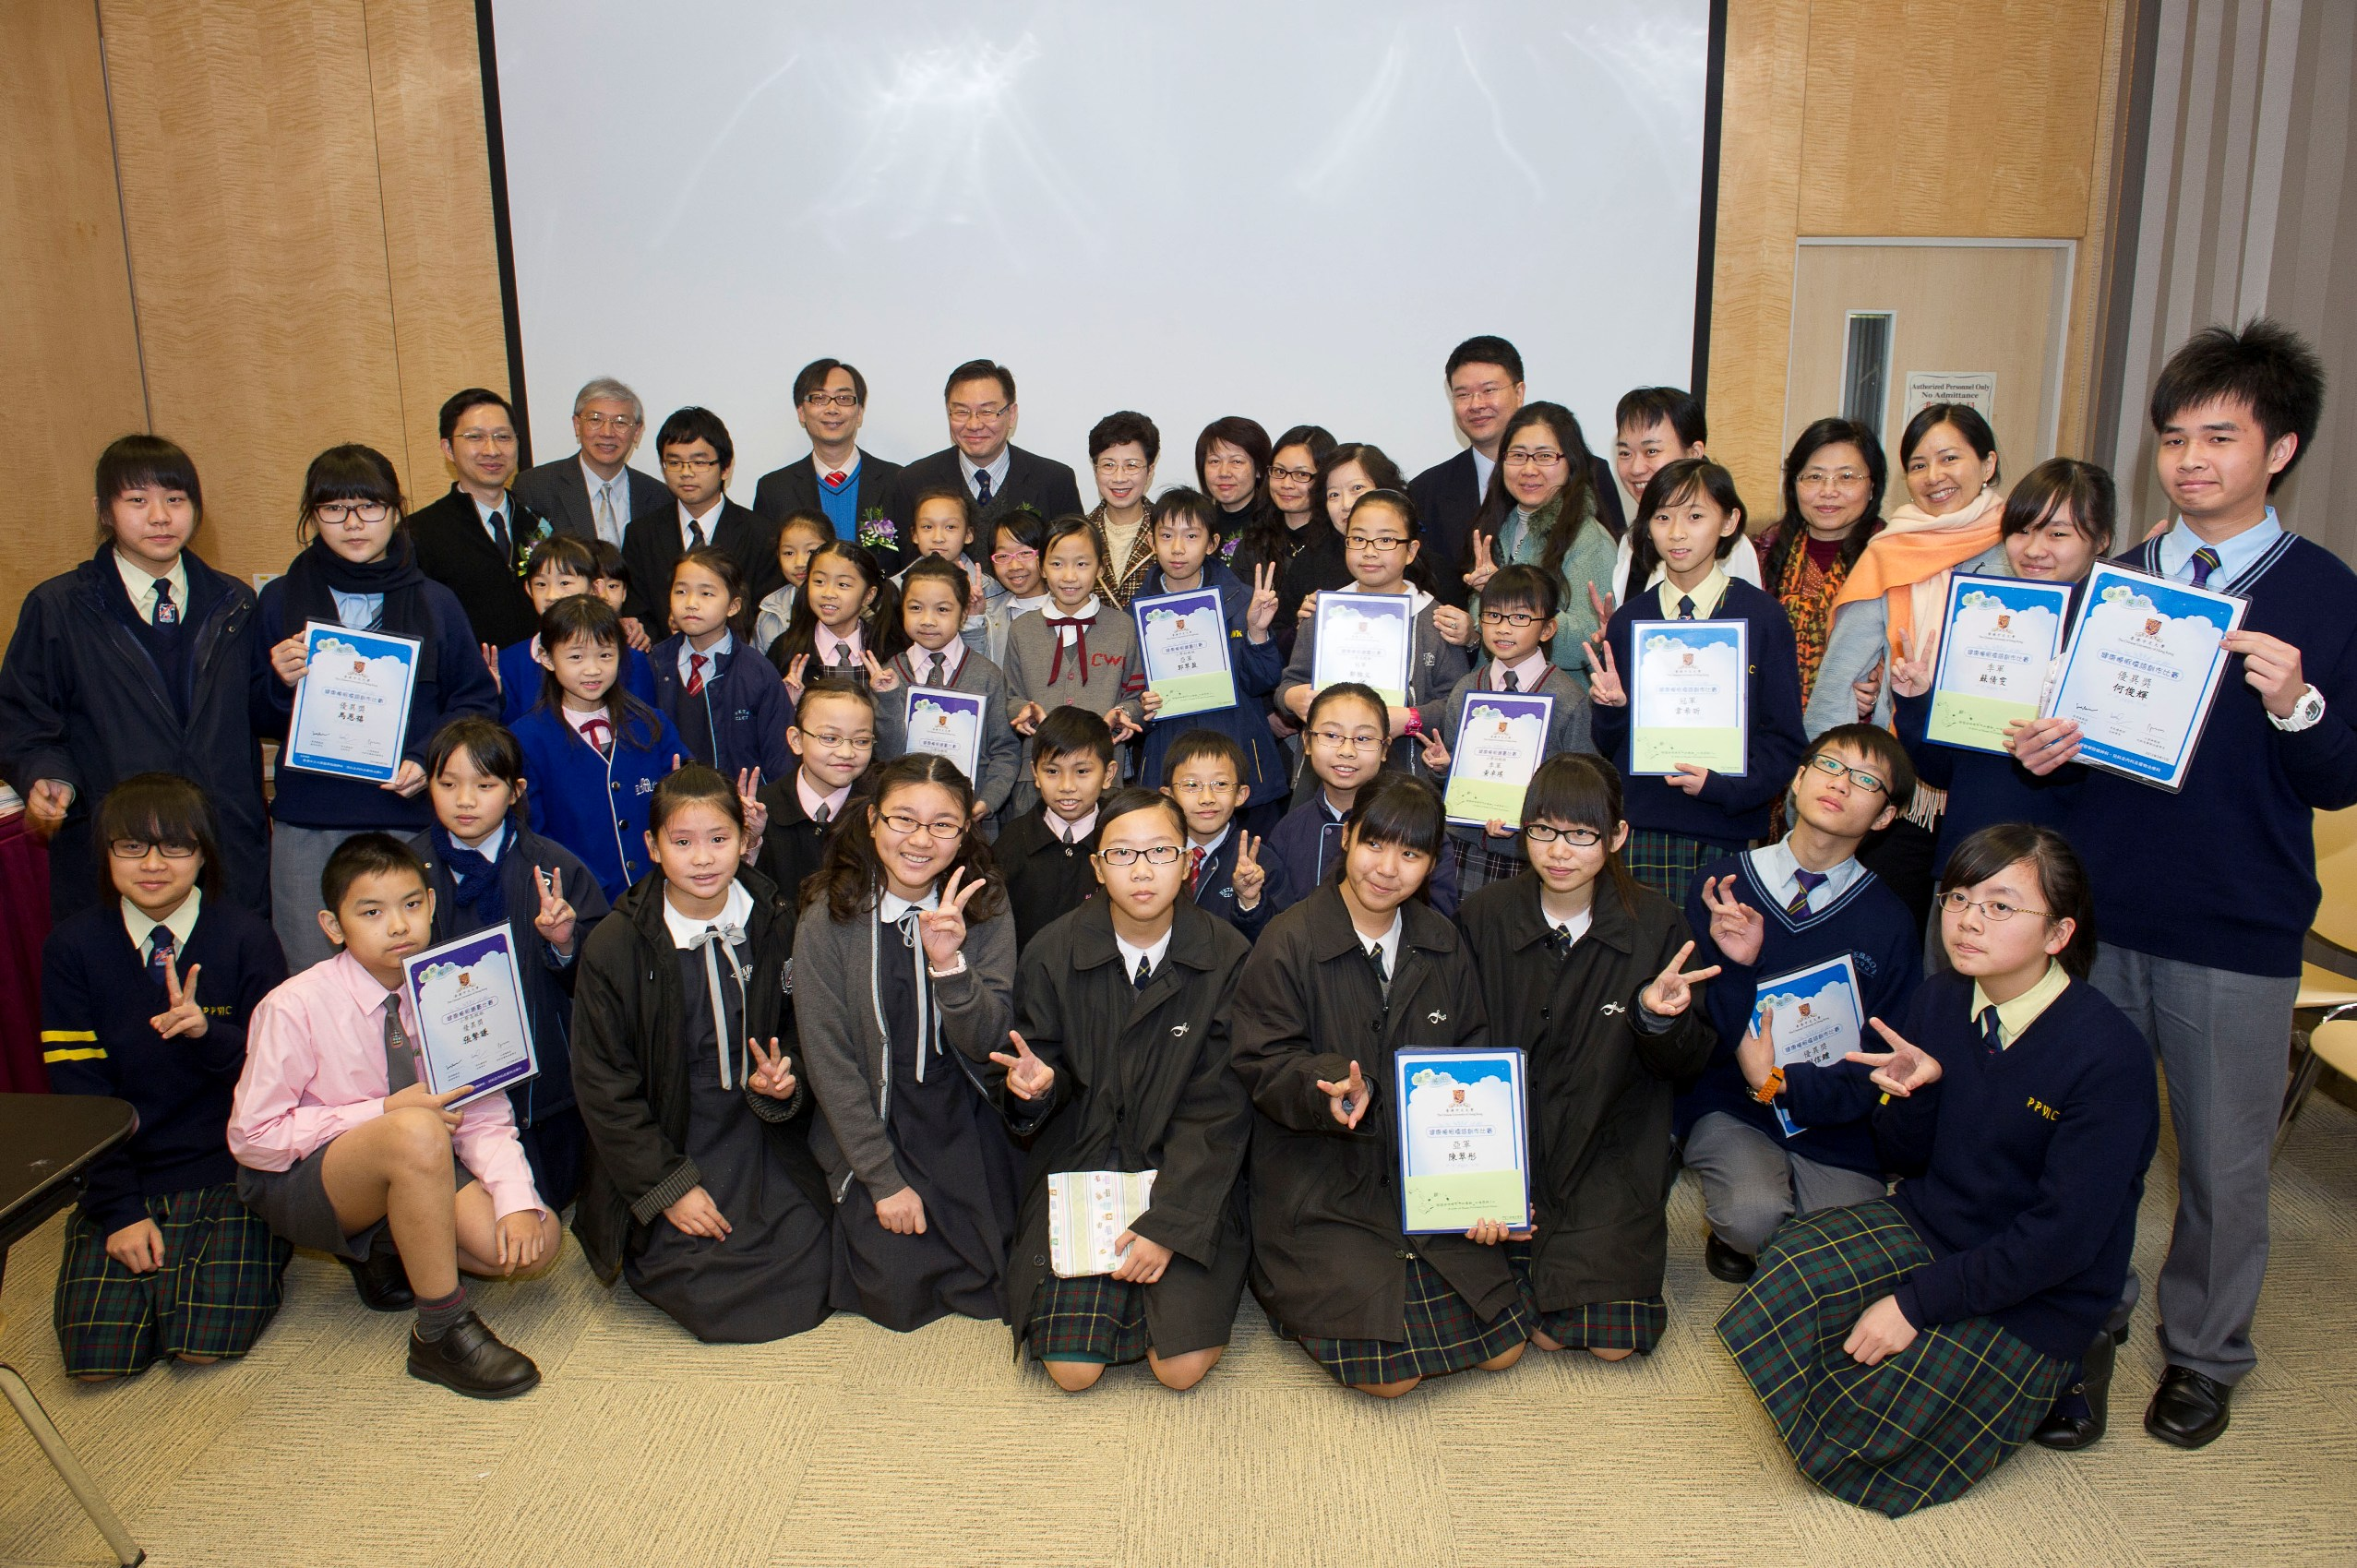 CUHK's research team, some of the students receiving awards from the Healthy Sleep Painting Competition and Healthy Sleep Slogan Competition of the territory-wide Sleep Health Education and Intervention Campaign, together with their school headmasters and teachers